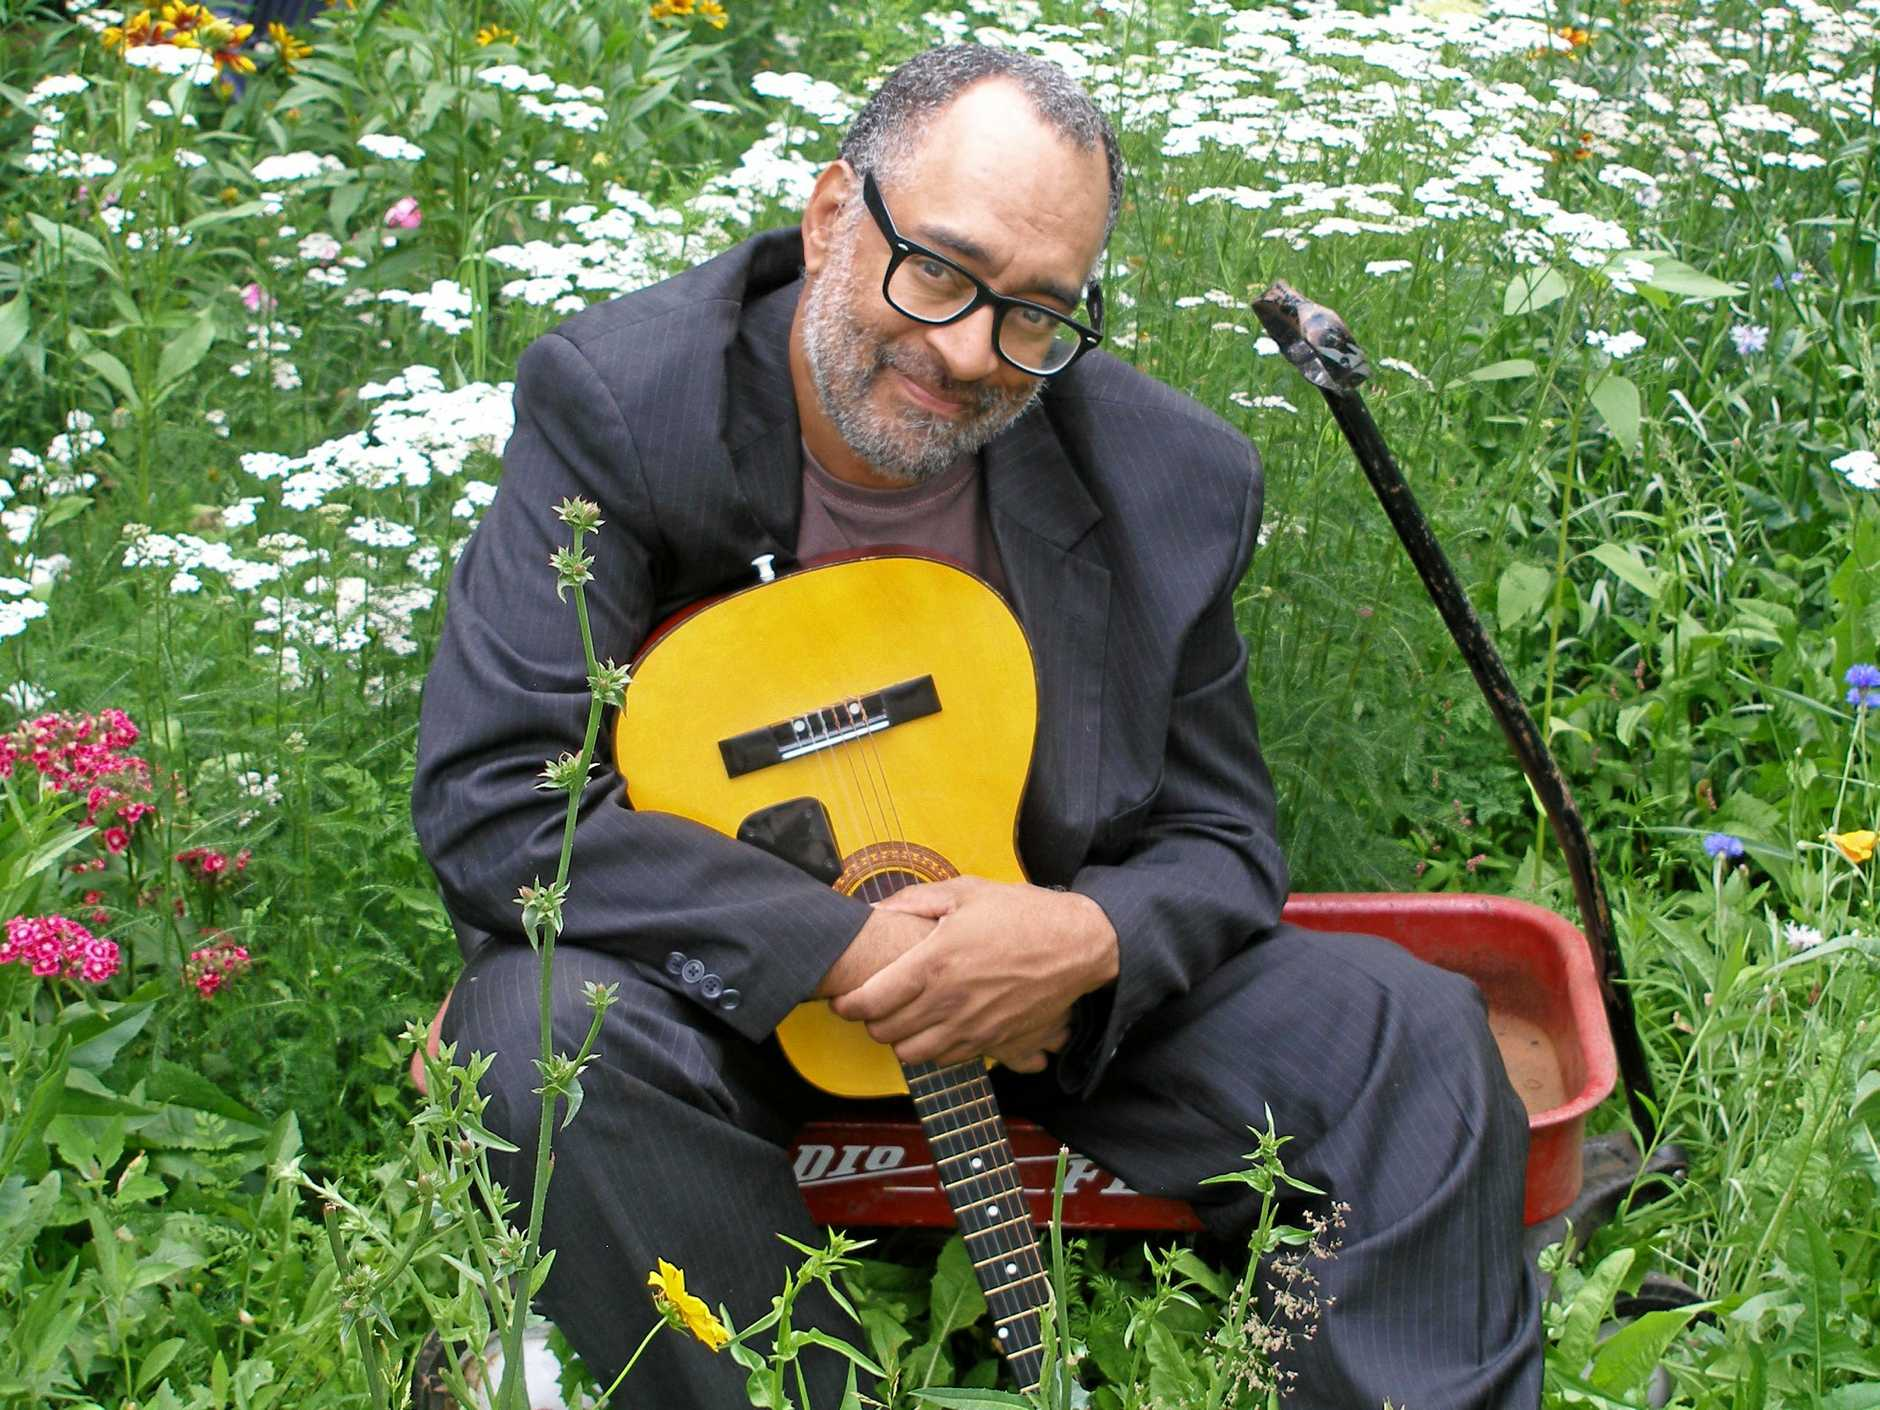 Vance Gilbert has released twelve albums since bursting onto the New York singer/songwriter scene in the nineties. His work is an ongoing commitment to traditional folk storytelling, yet remains true to his jazz roots. He can count opening for soul legend Aretha Franklin among his many achievements.